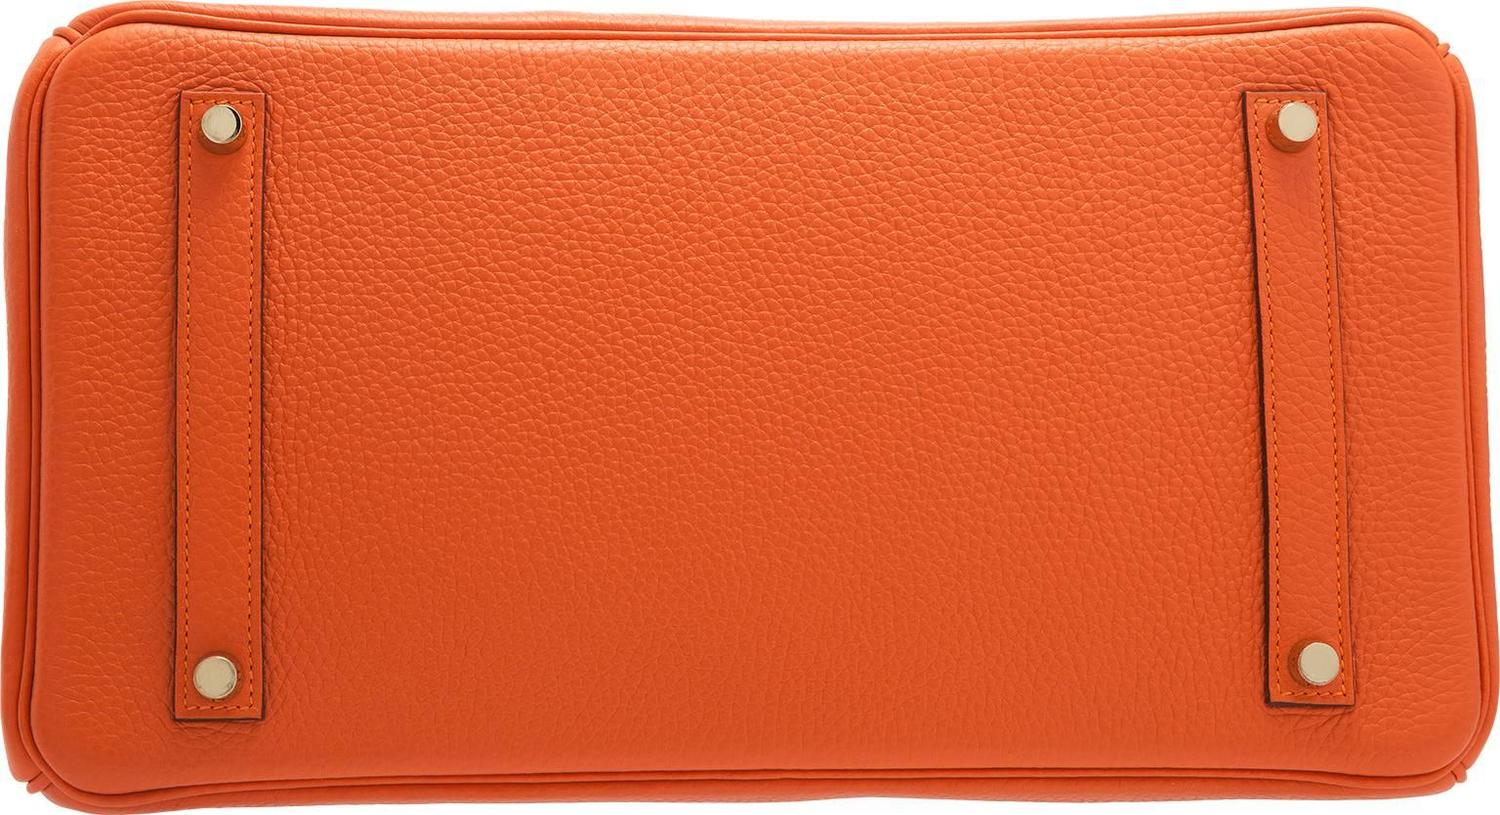 hermes leather bag - hermes 35cm orange feu clemence birkin bag with gold hardware